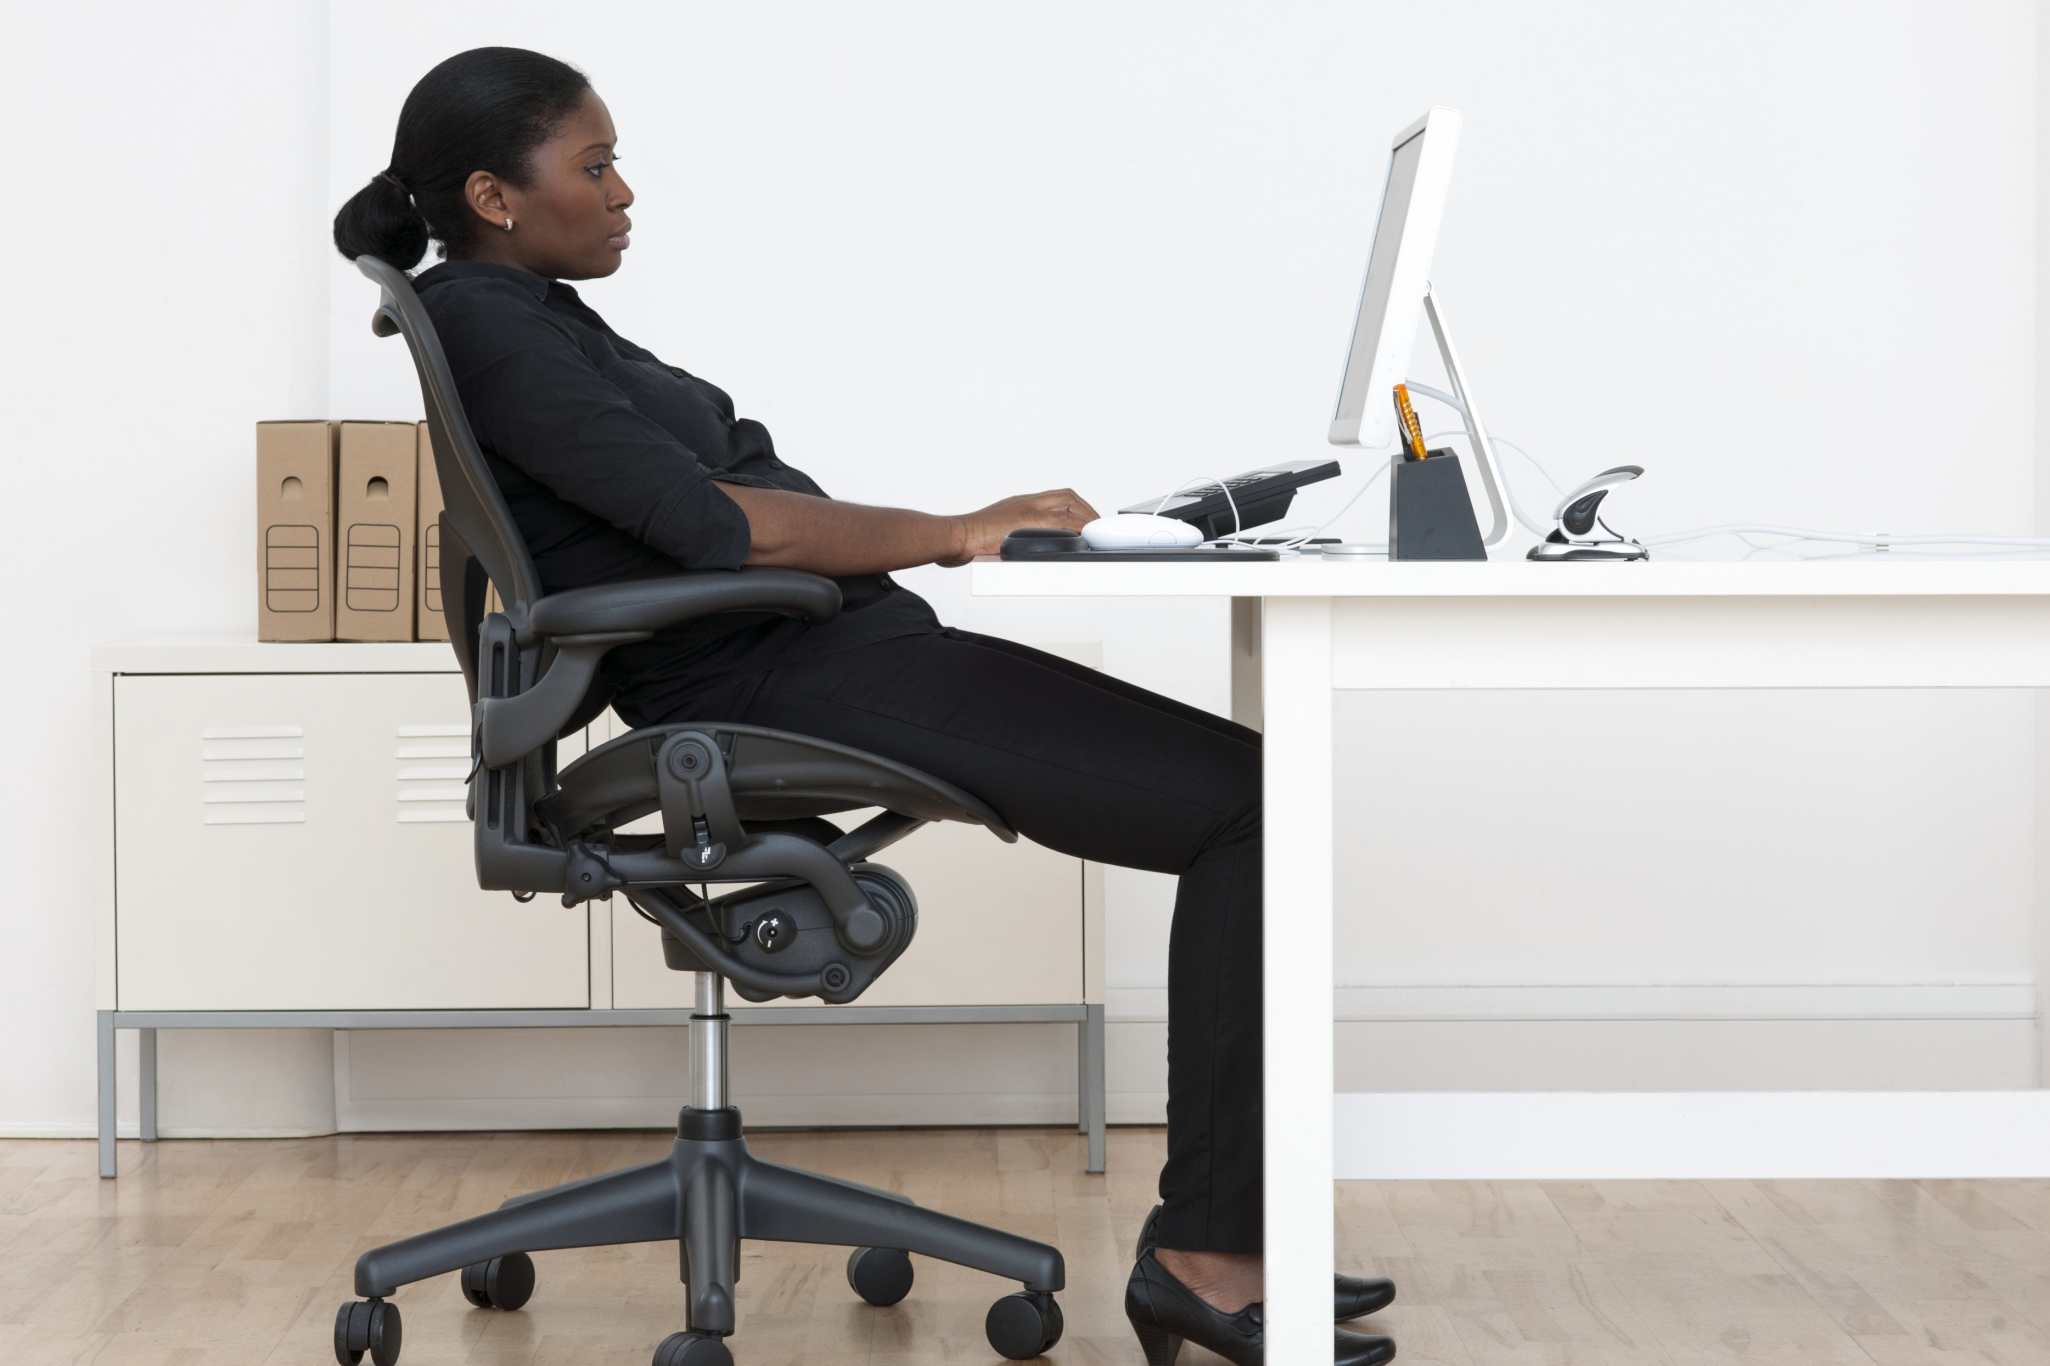 desk chair leans forward unfinished wood frames 7 ways to improve your posture wellness us news